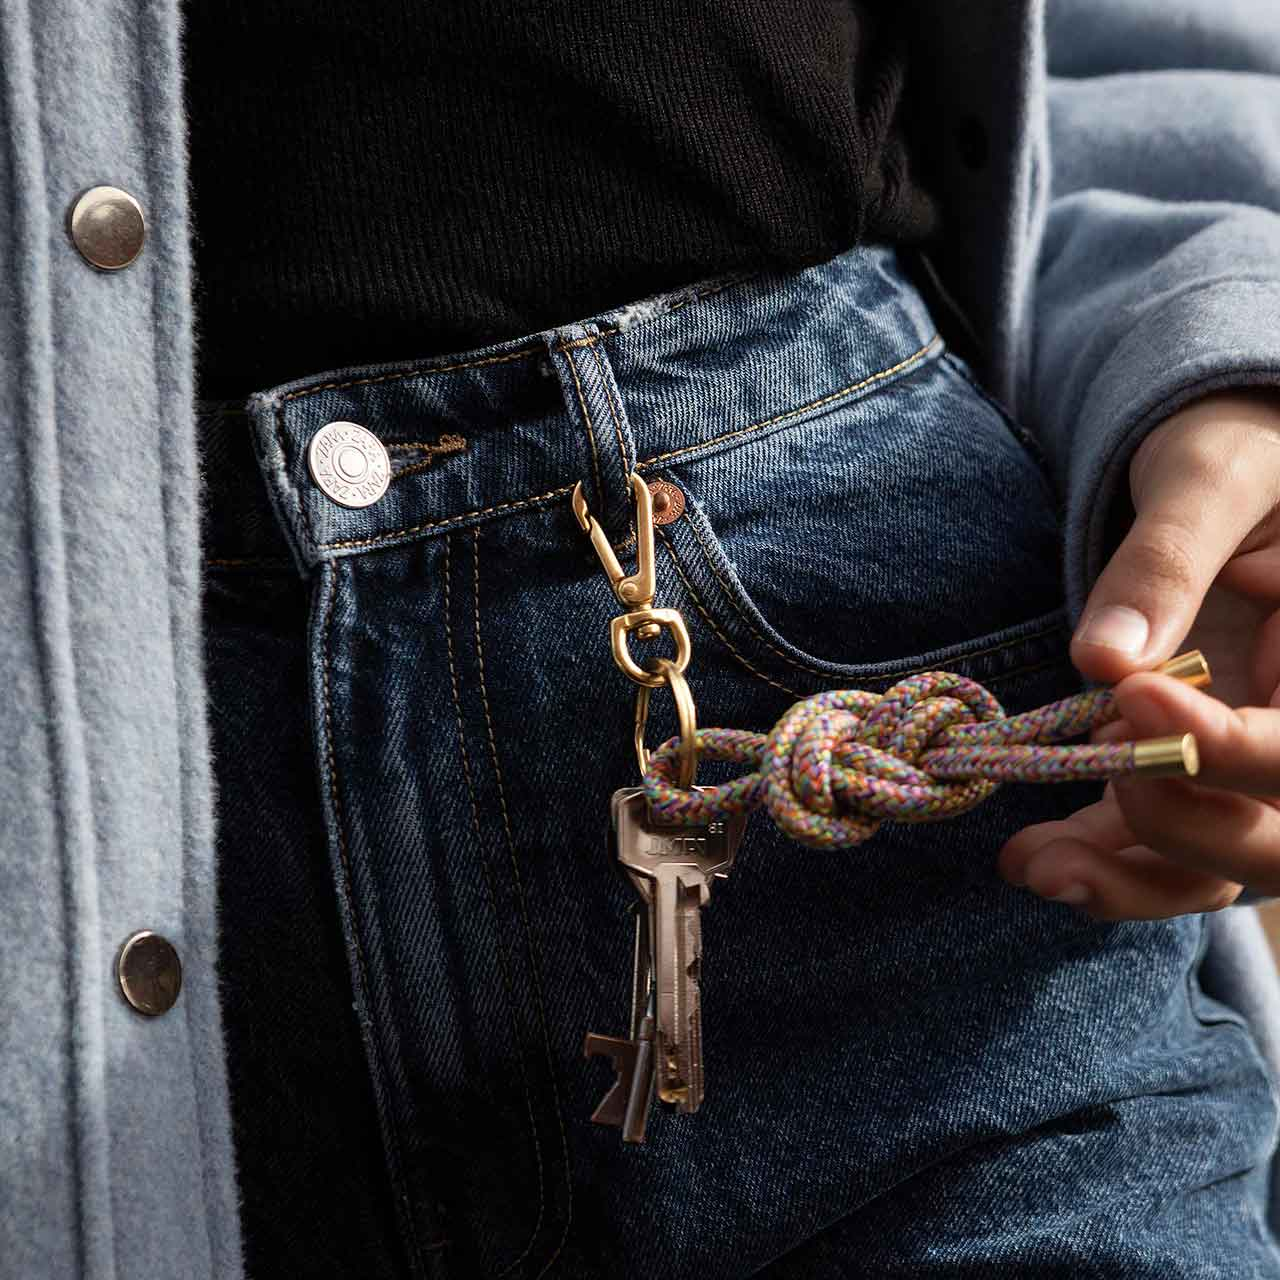 Model with a KNOK Key Knot keyring in multicoloured unicorn colour way attached to her jeans belt loop.